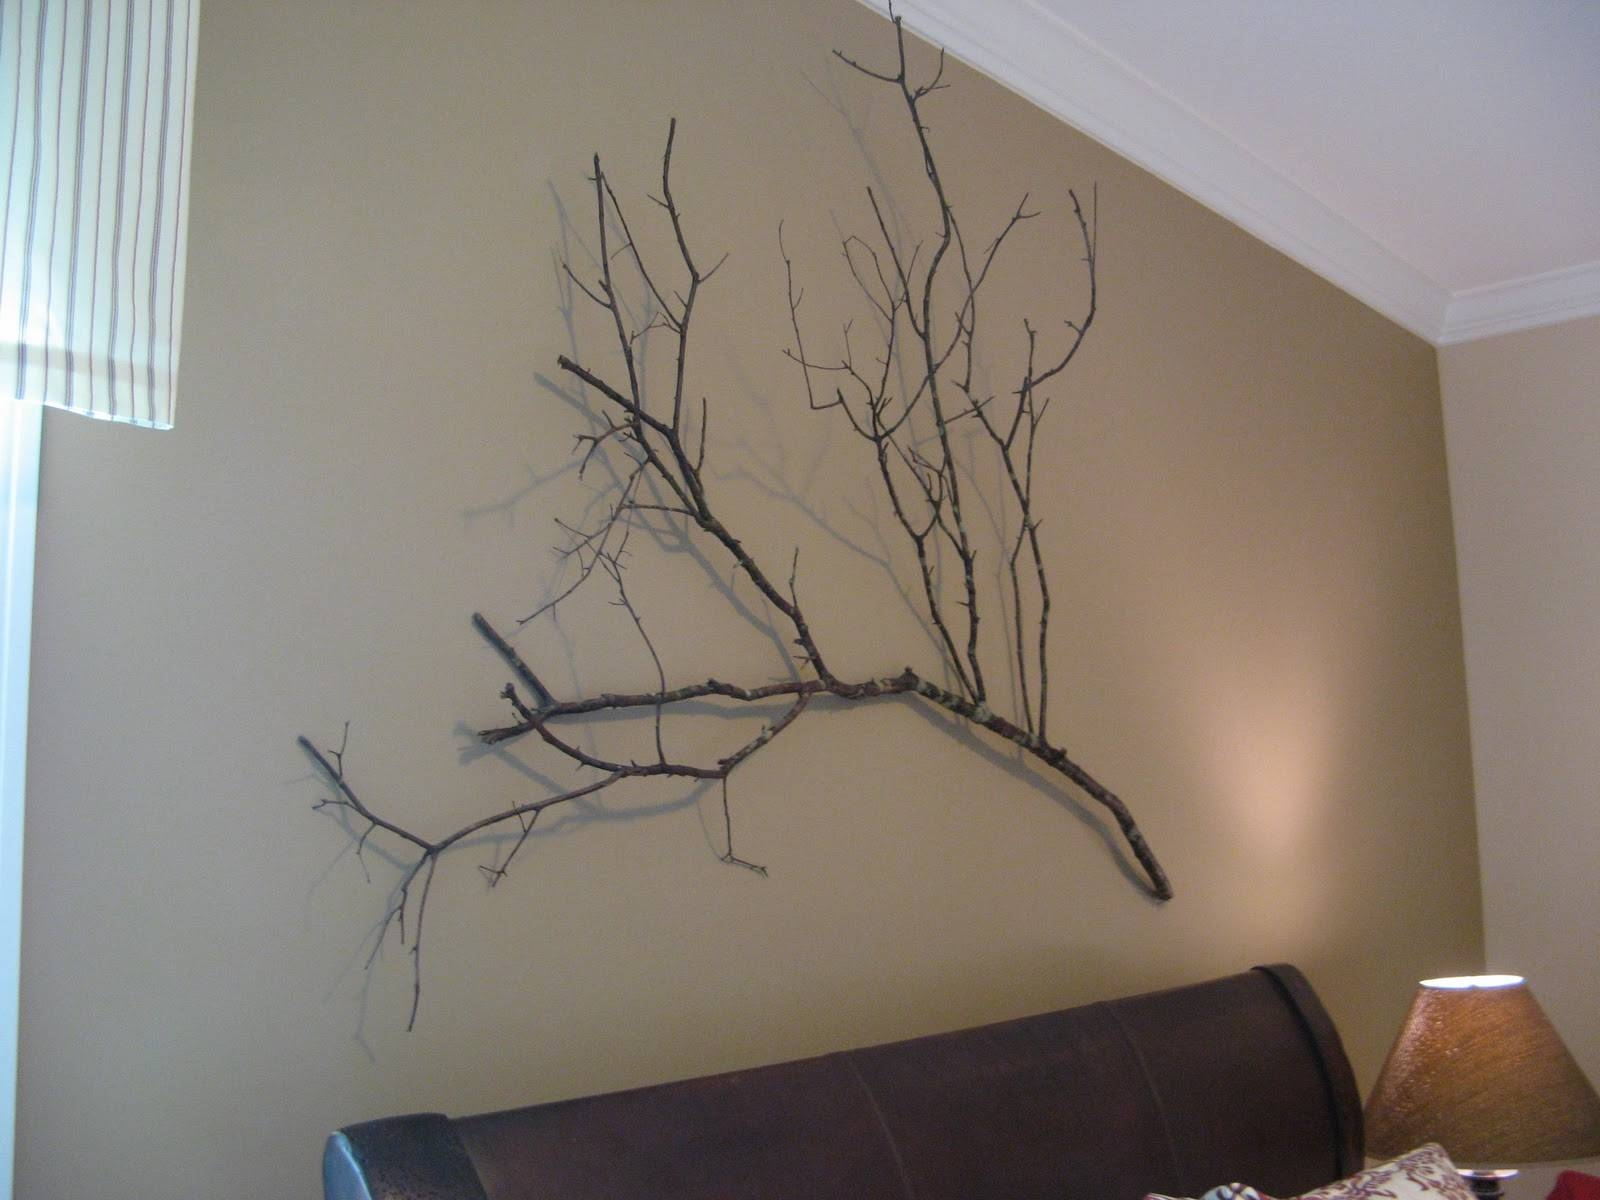 Extraordinary Design Branch Wall Art Metal Diy 2 Pc Set Birch For Most Recent Metal Wall Art Branches (View 18 of 20)